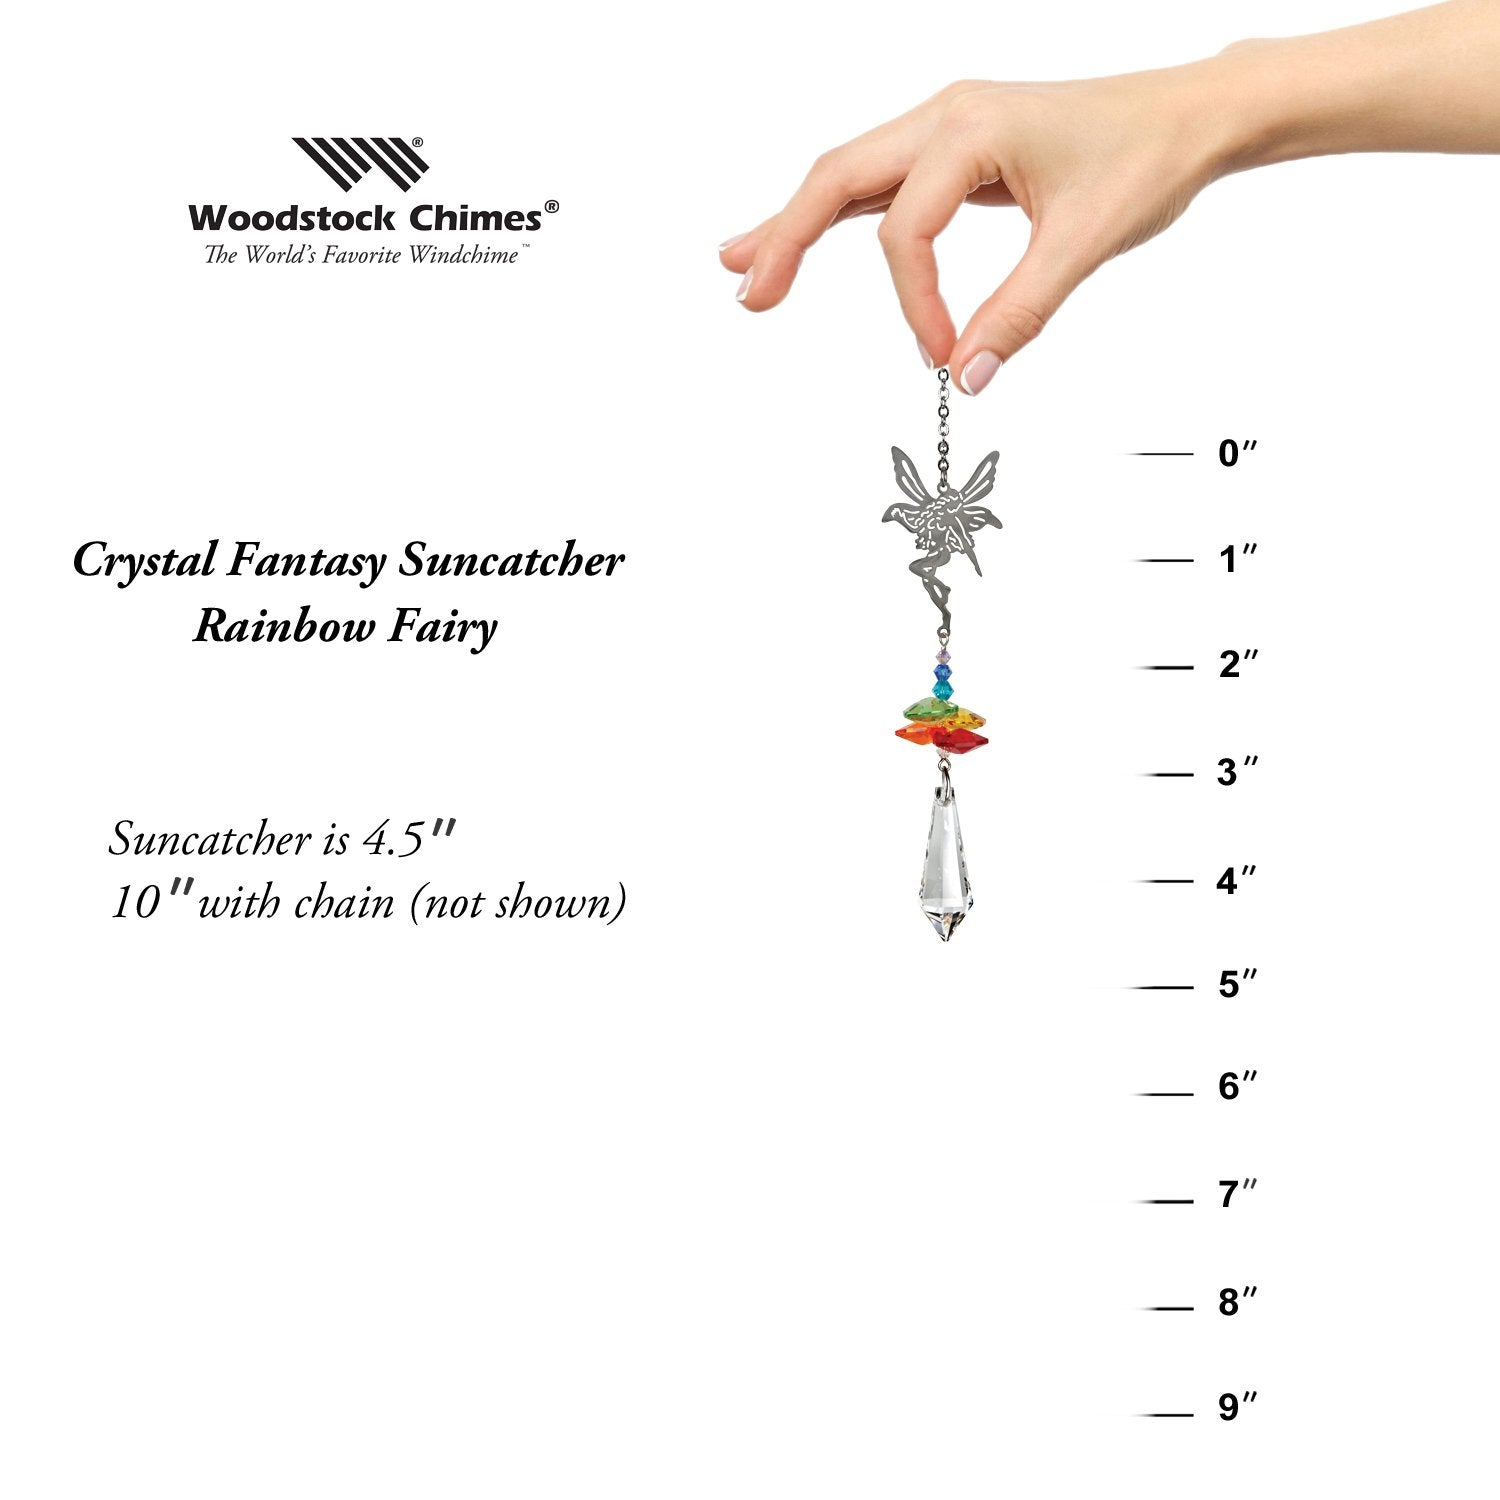 Crystal Fantasy Suncatcher - Rainbow Fairy proportion image